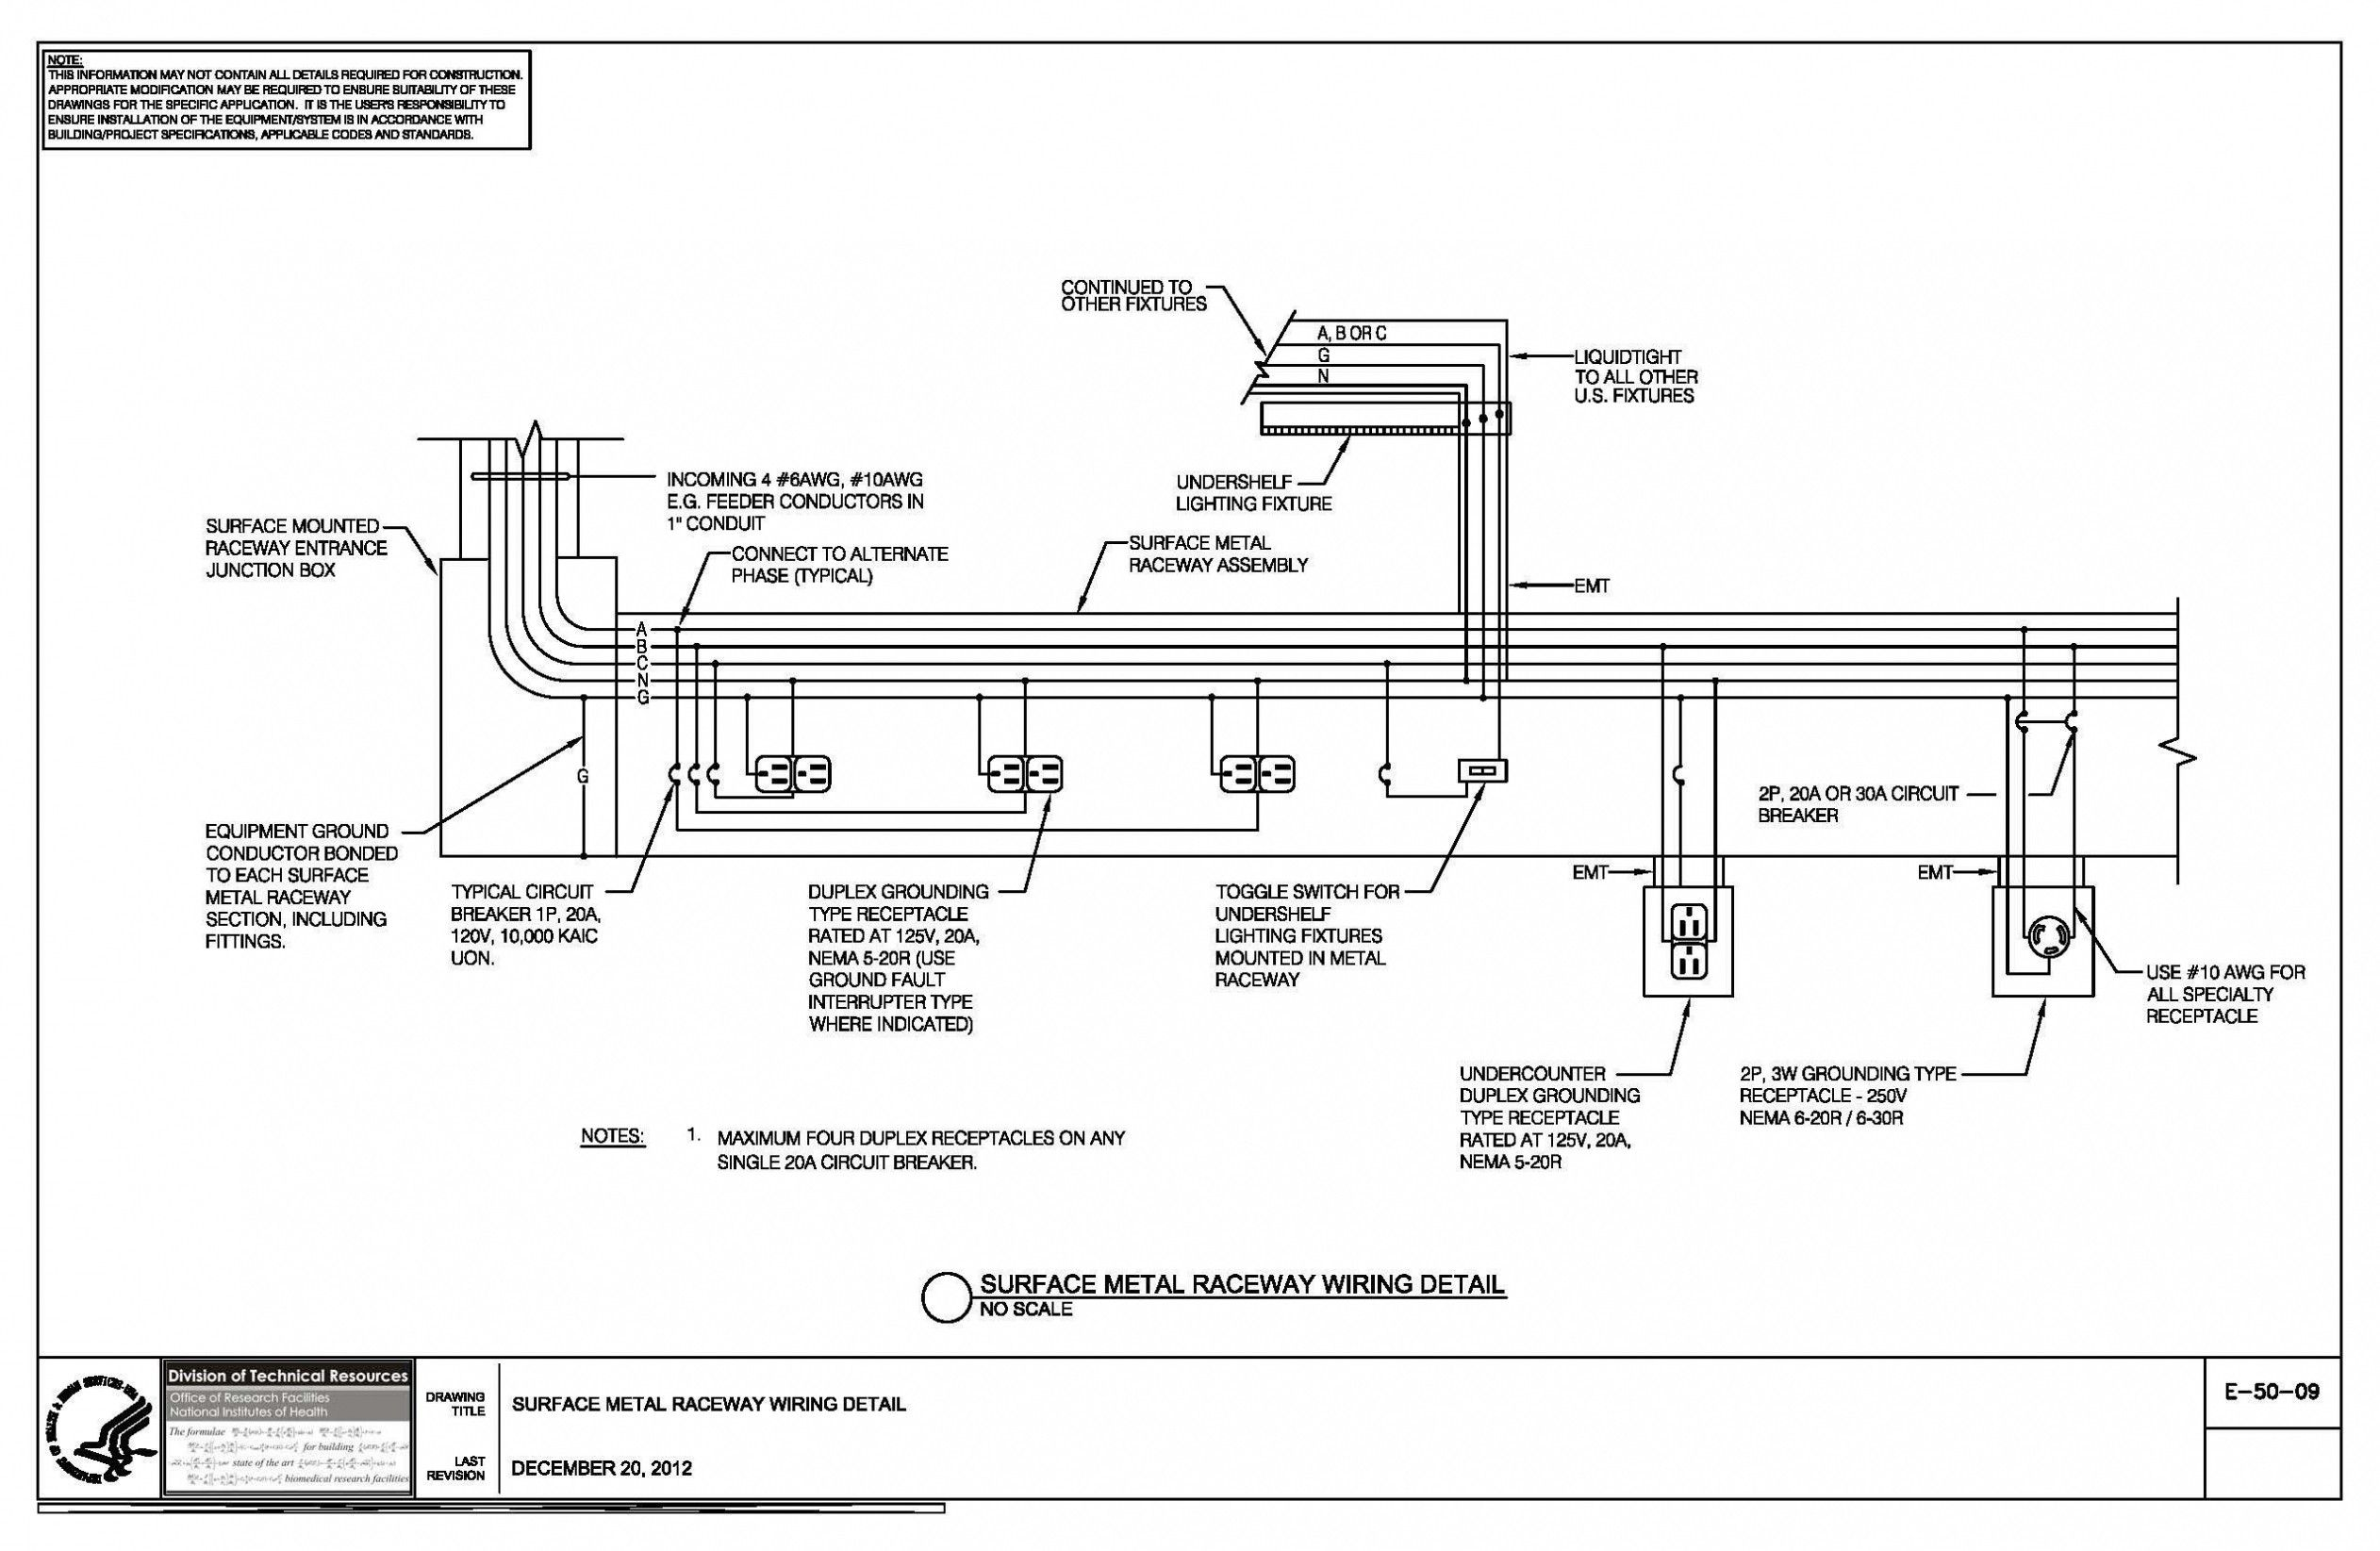 Mouse Trap Car Diagram Electrical Wiring Diagram Pool Electrical Electrical Circuit Diagram